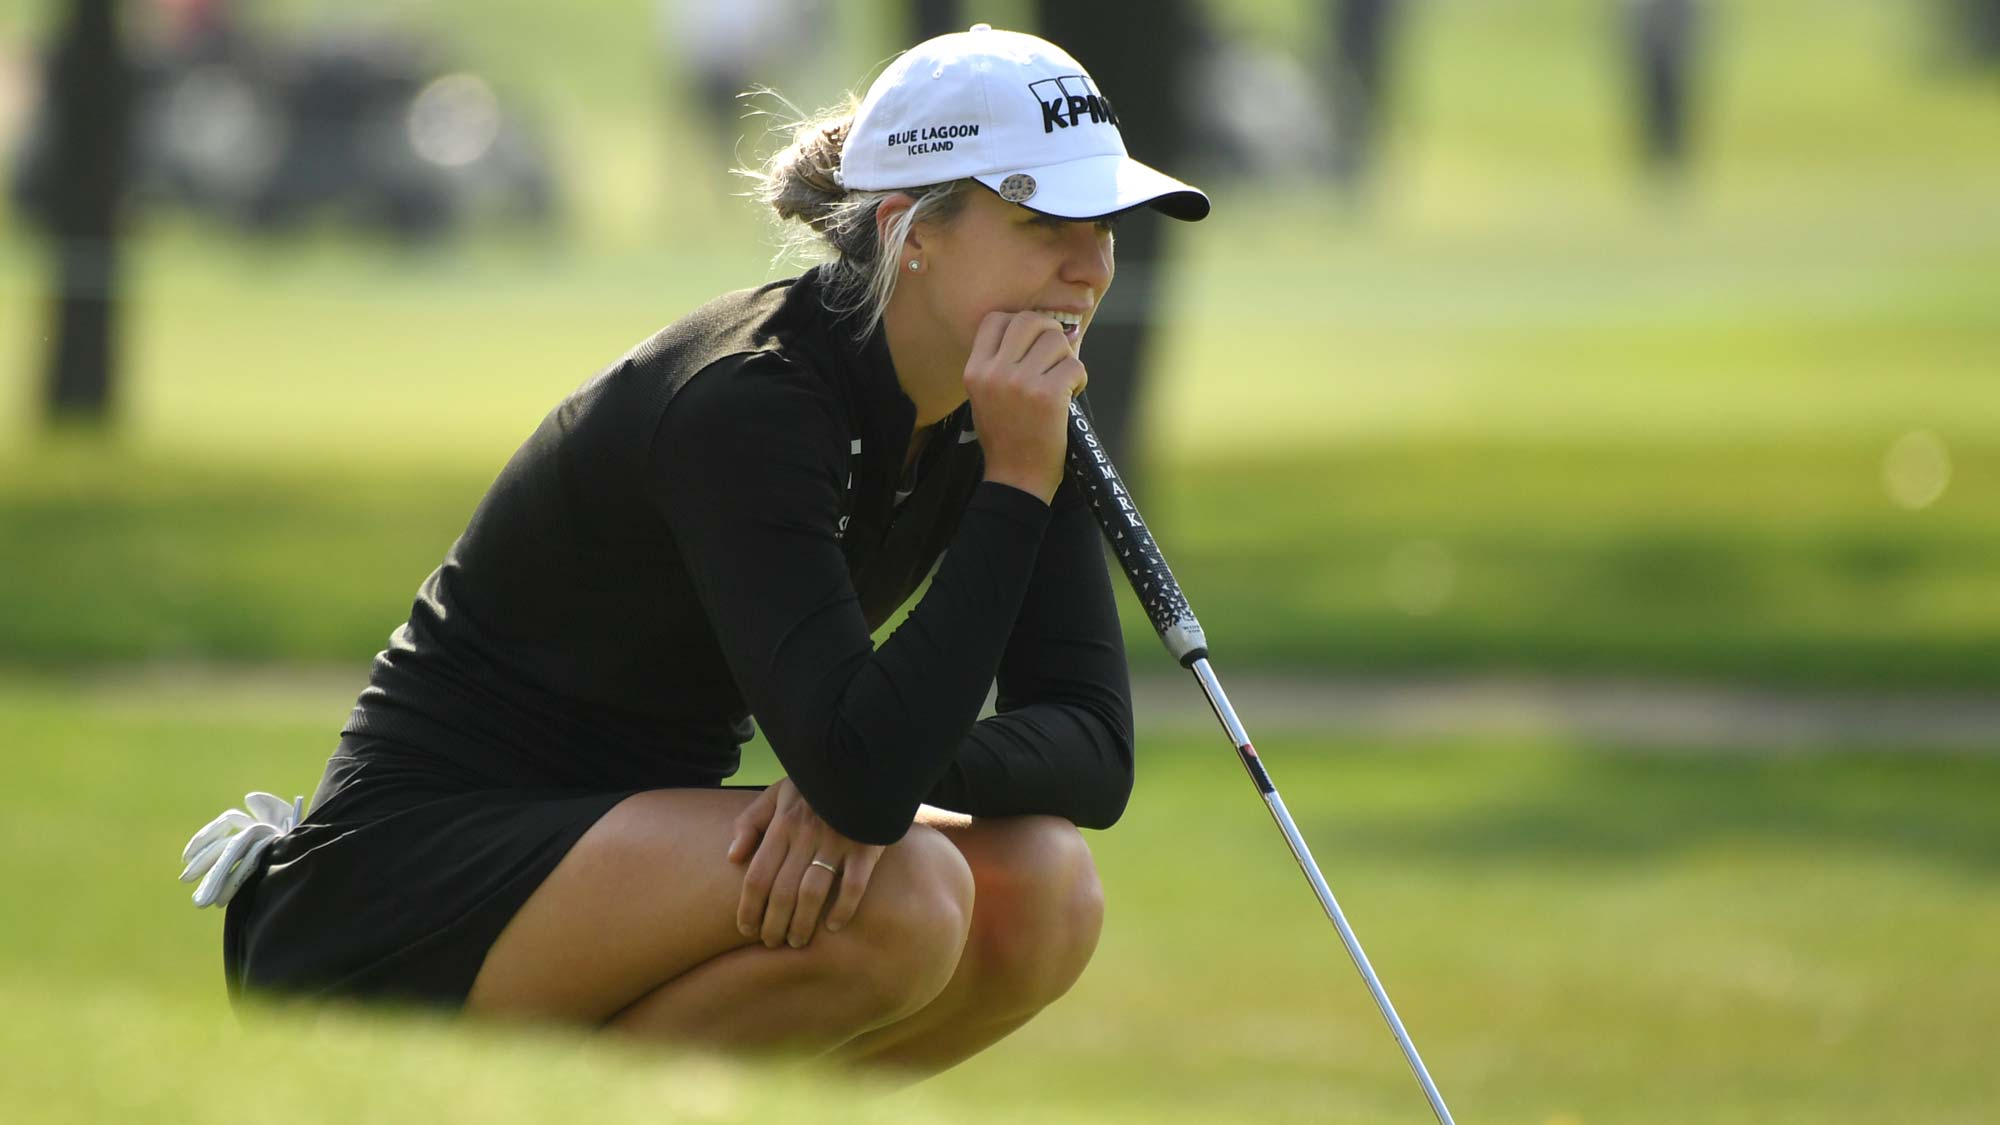 Olafia Kristinsdottir during a practice round at the 2018 CP Women's Open